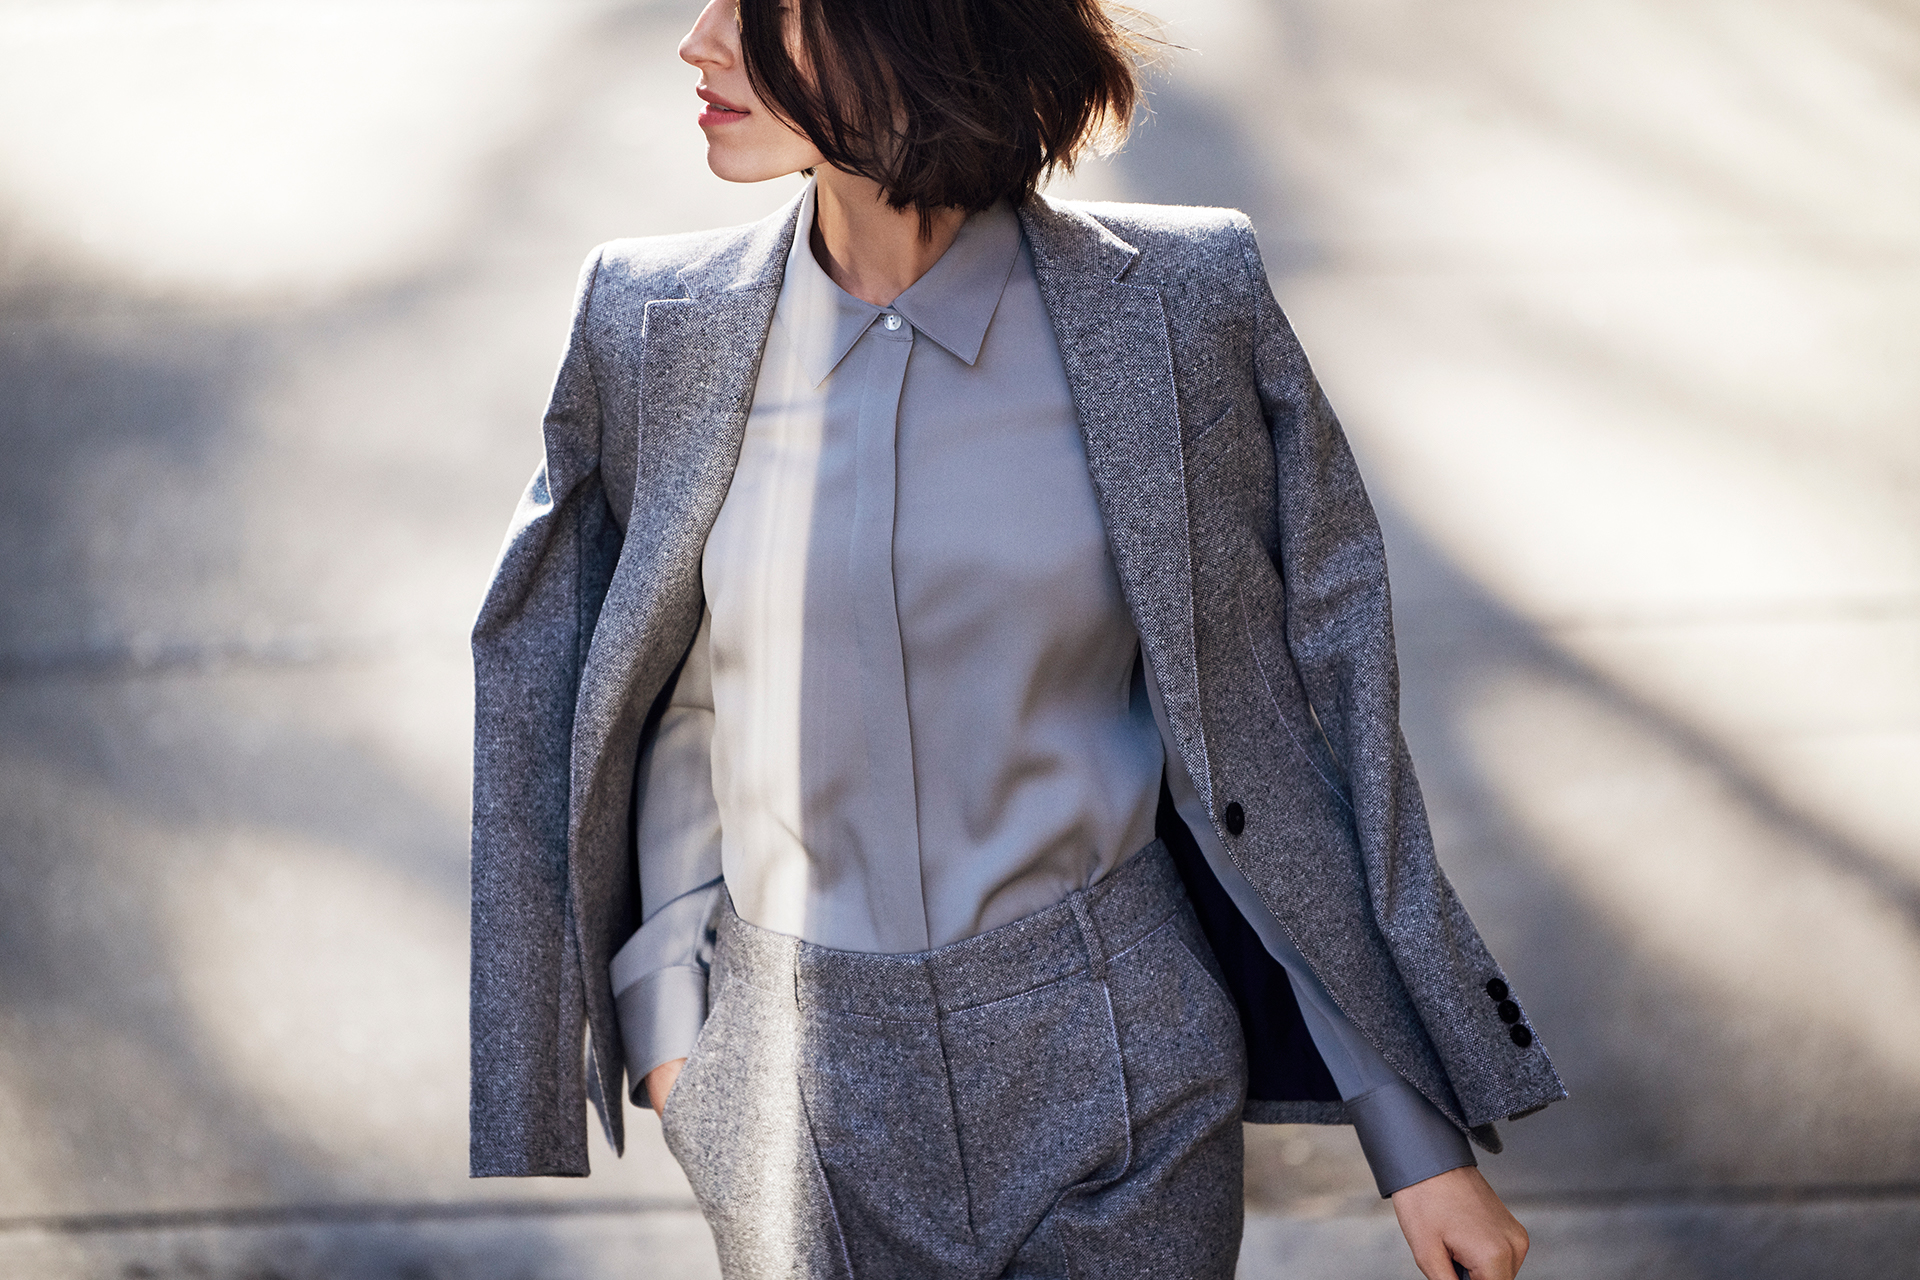 Theory_2019_Fall_Campaign_4_womens_suit